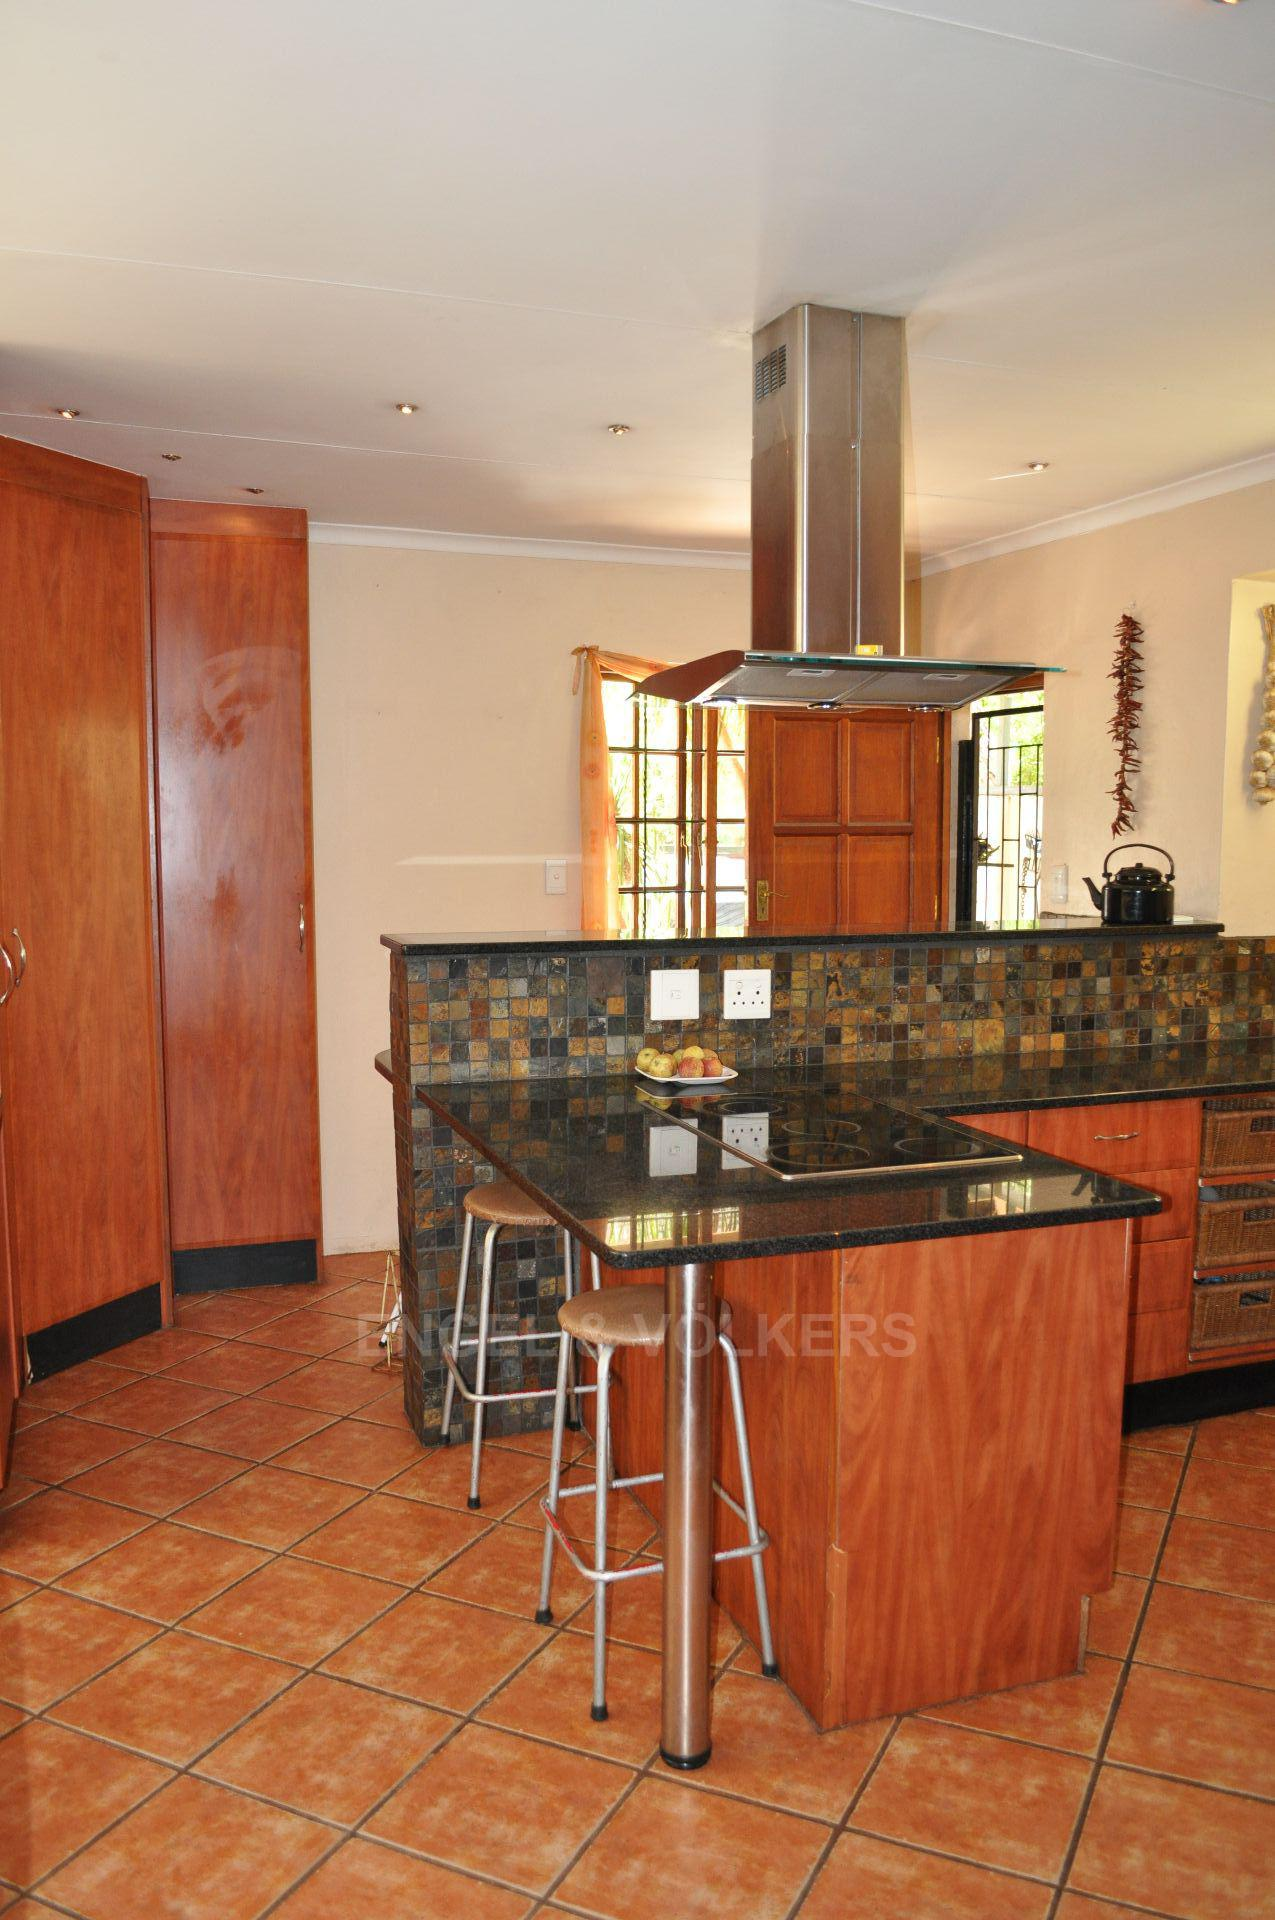 Doringkloof property for sale. Ref No: 13579964. Picture no 8